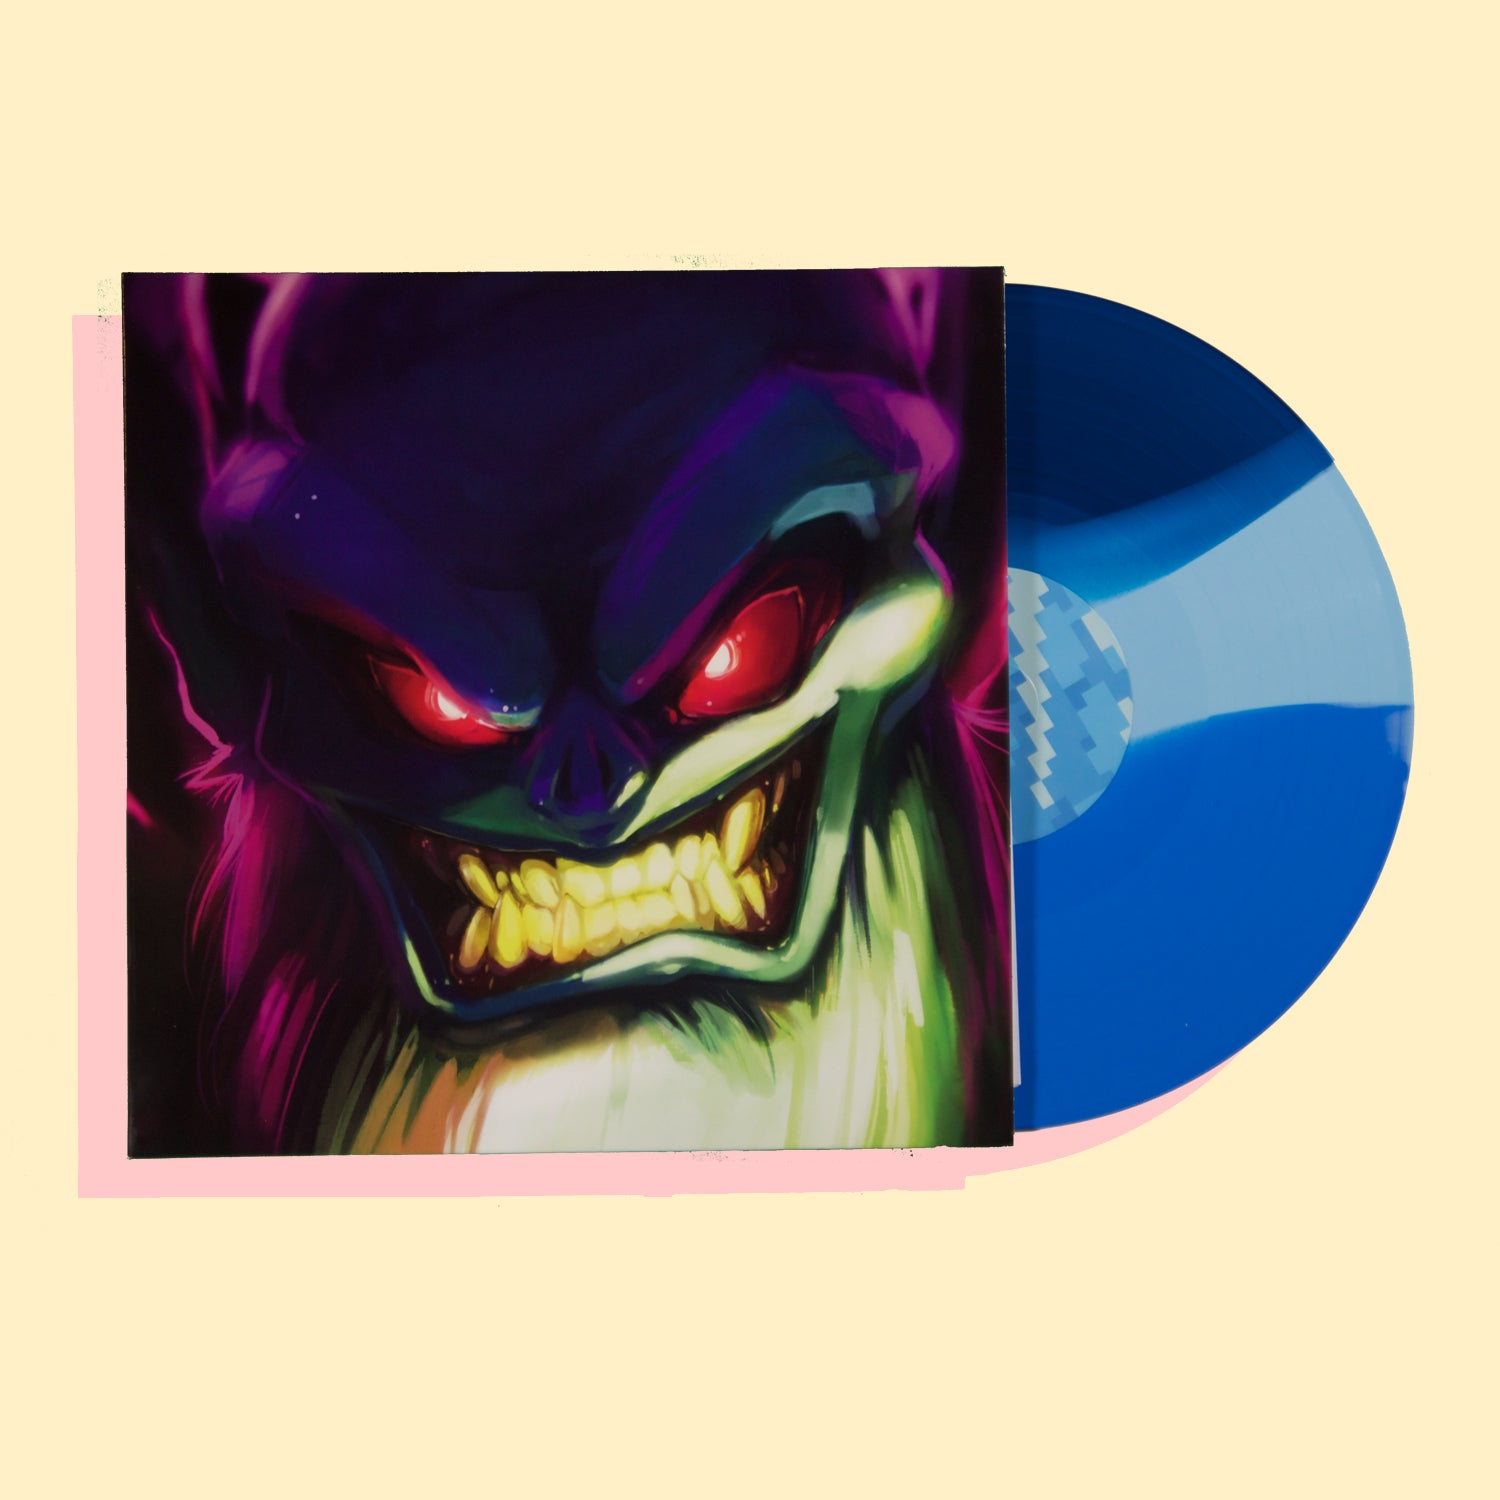 CRYPT OF THE NECRODANCER OST (DELUXE 2xLP)